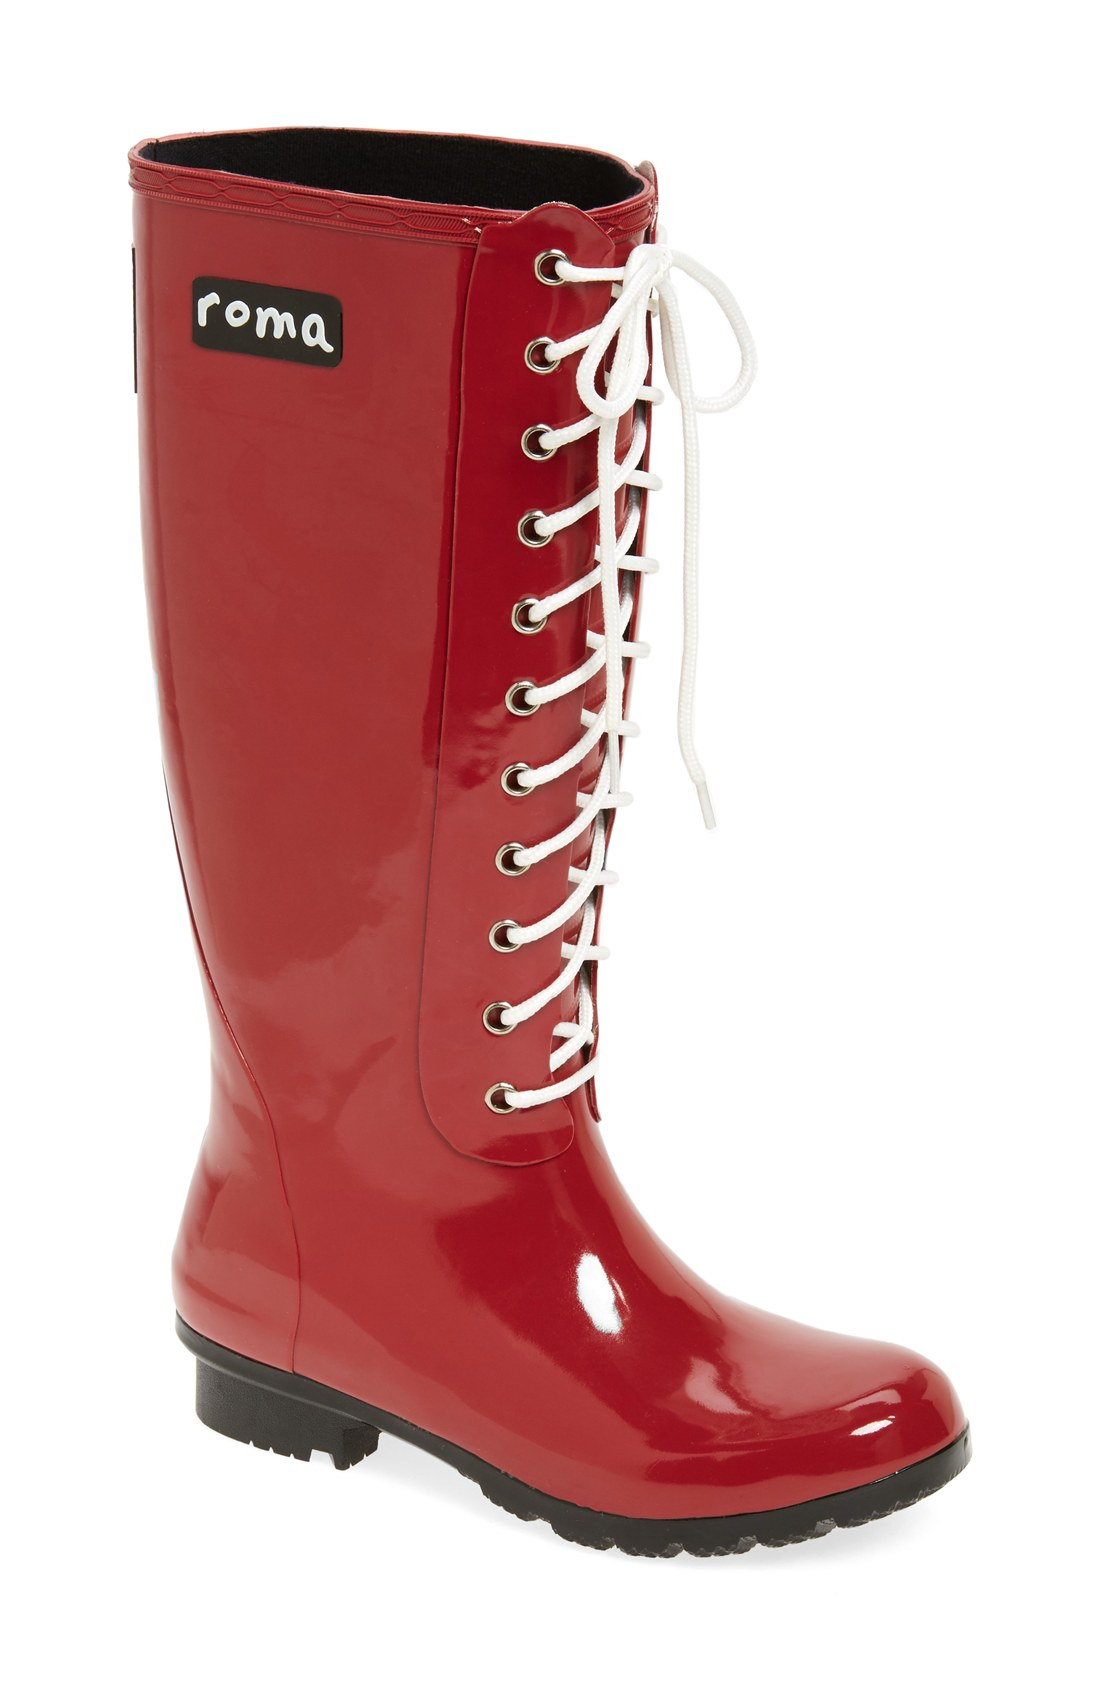 Womens Red Rain Boots Y8CR5Qmo